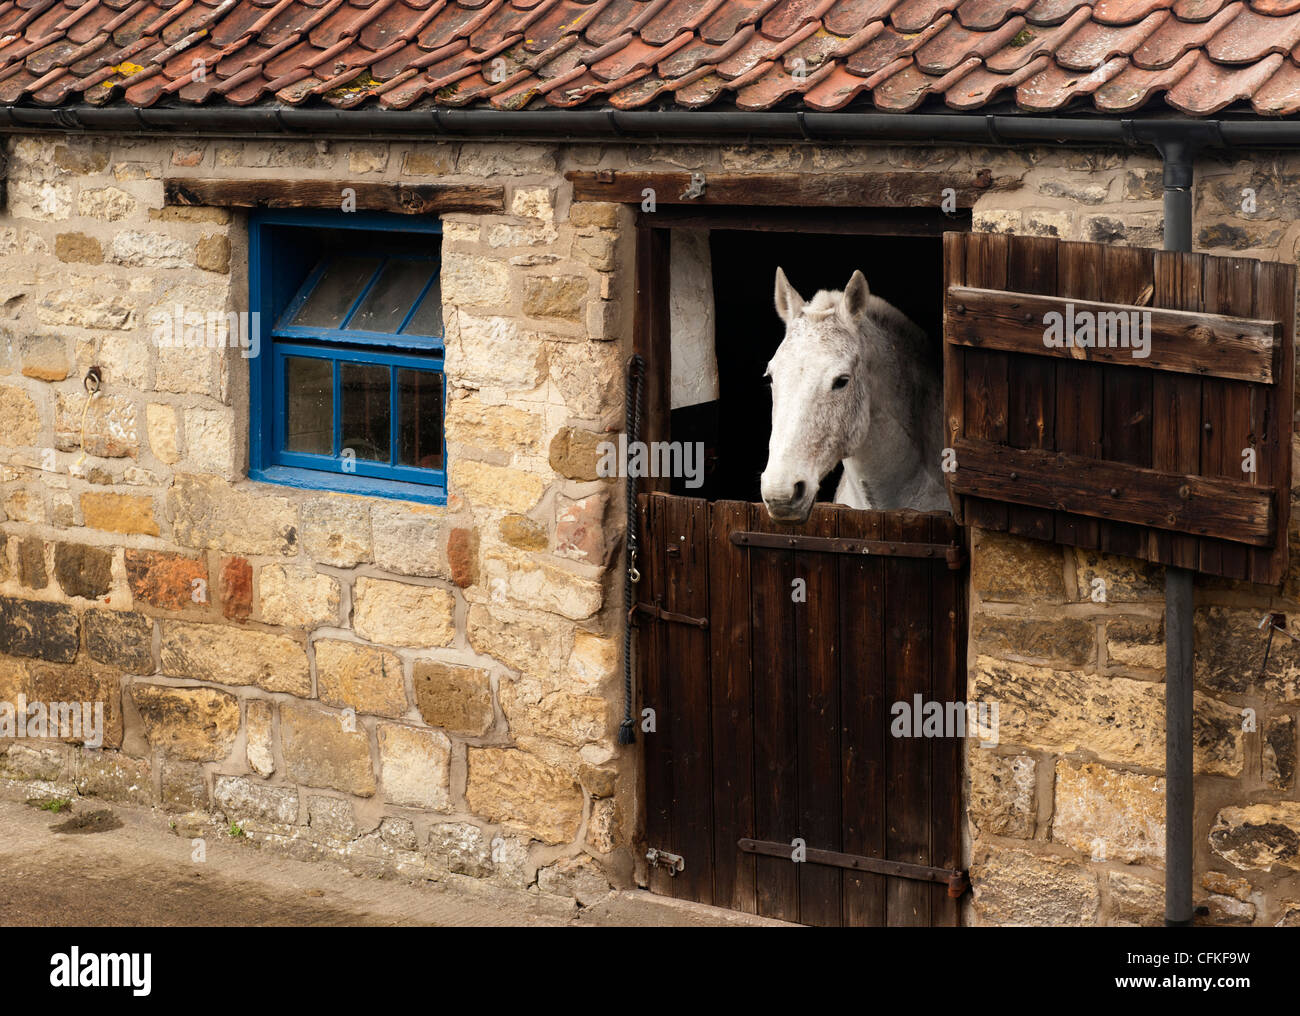 Horse in stables - Stock Image